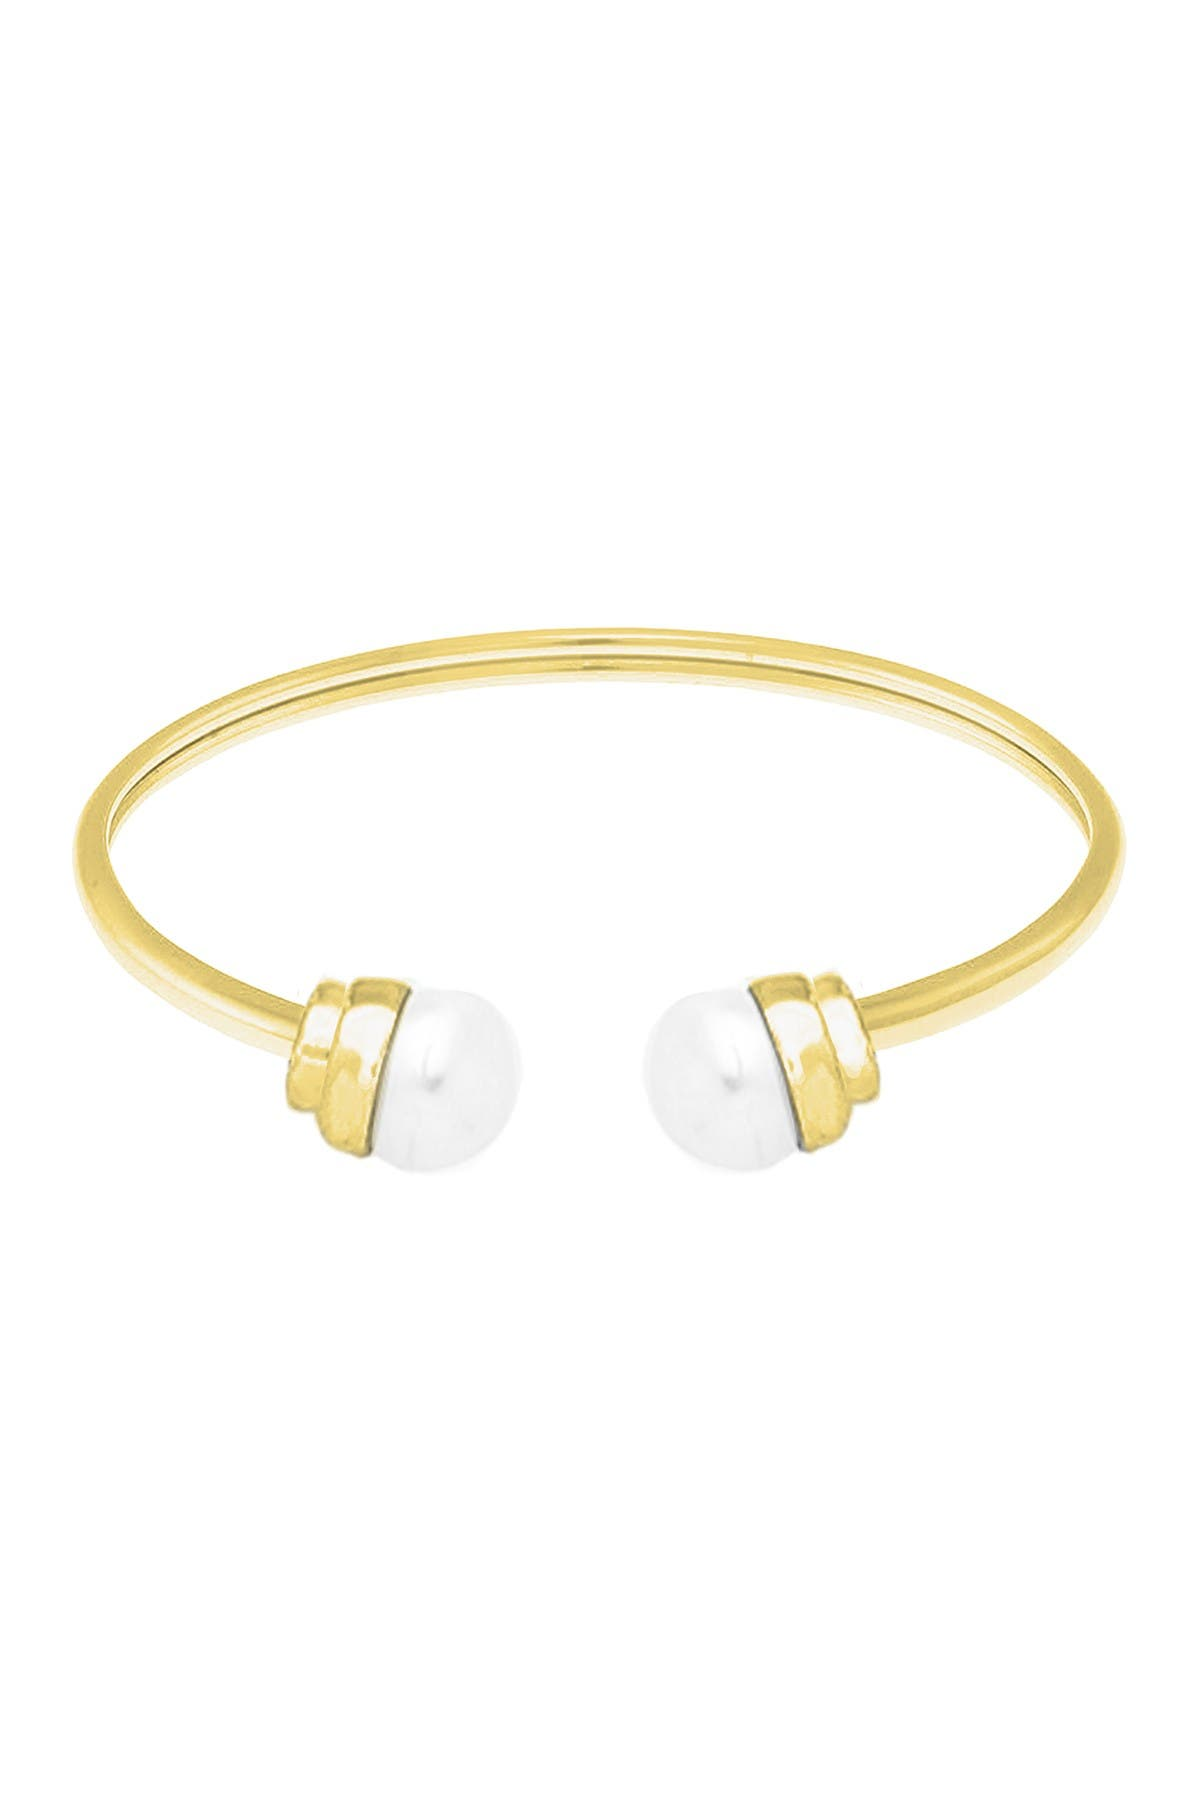 Image of Savvy Cie Cultured Freshwater 10mm Pearl Open Bangle Bracelet